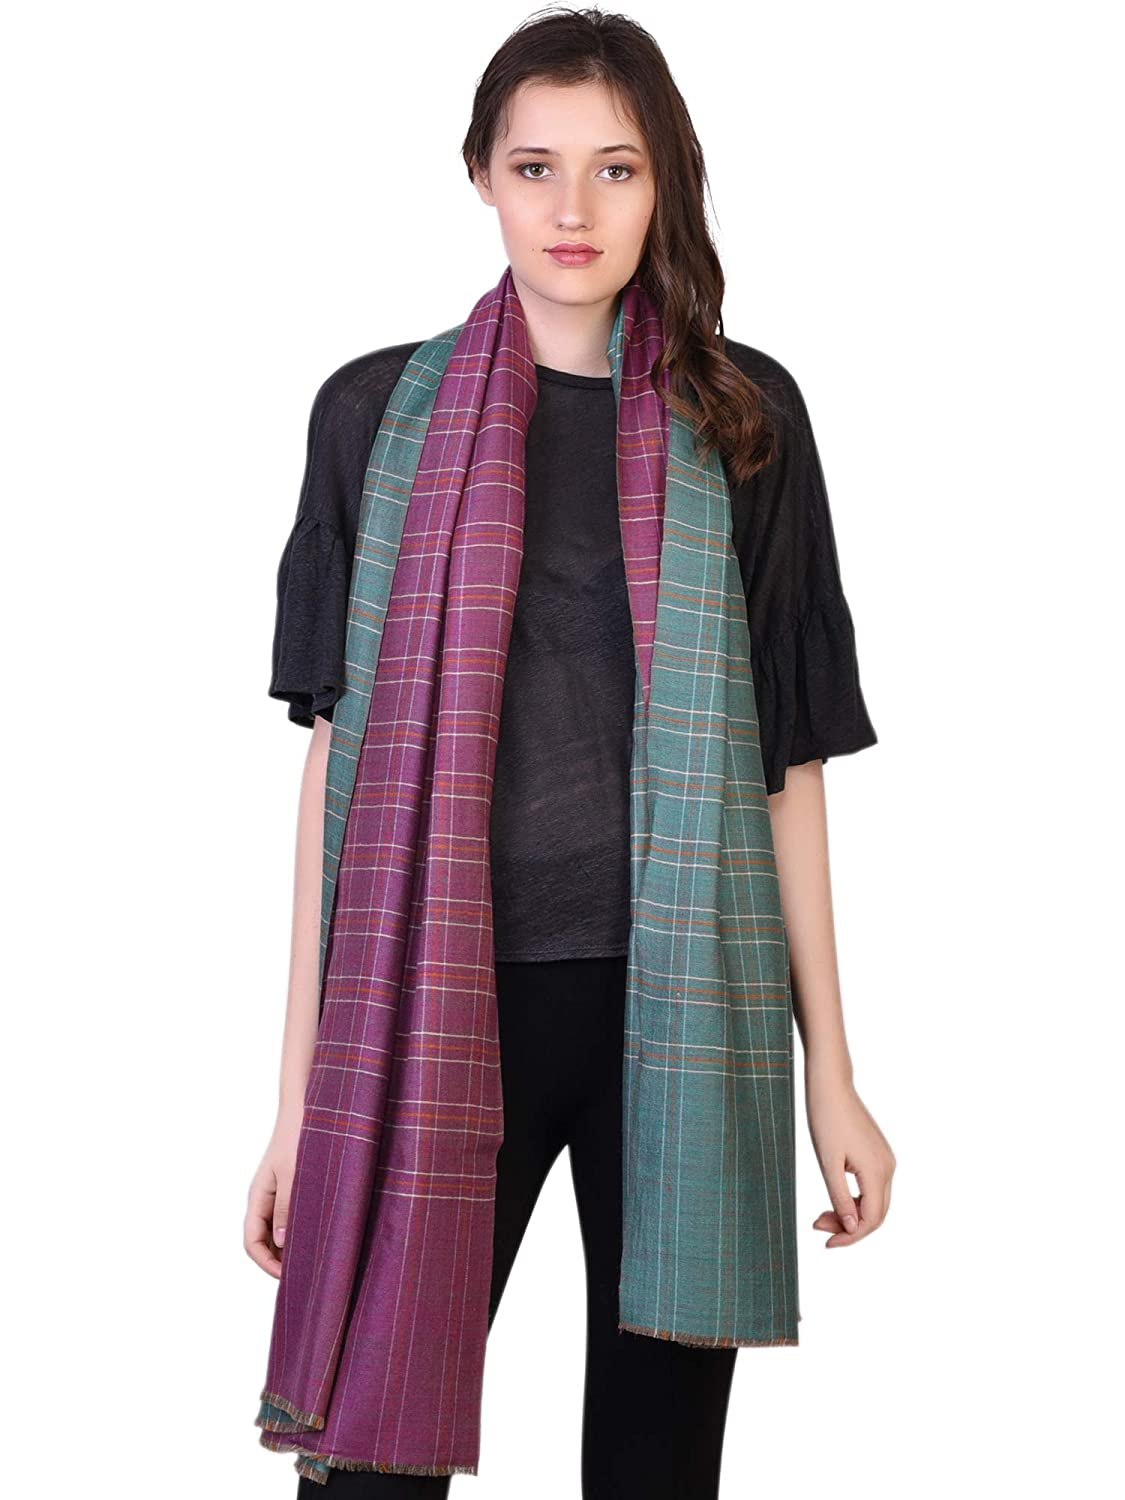 Hand Embroidery Autumn Winter 2019-20 Collection Luxurious Merino Wool Womens Pashmina Shawl Scarf Made in Kashmir by KASHFAB